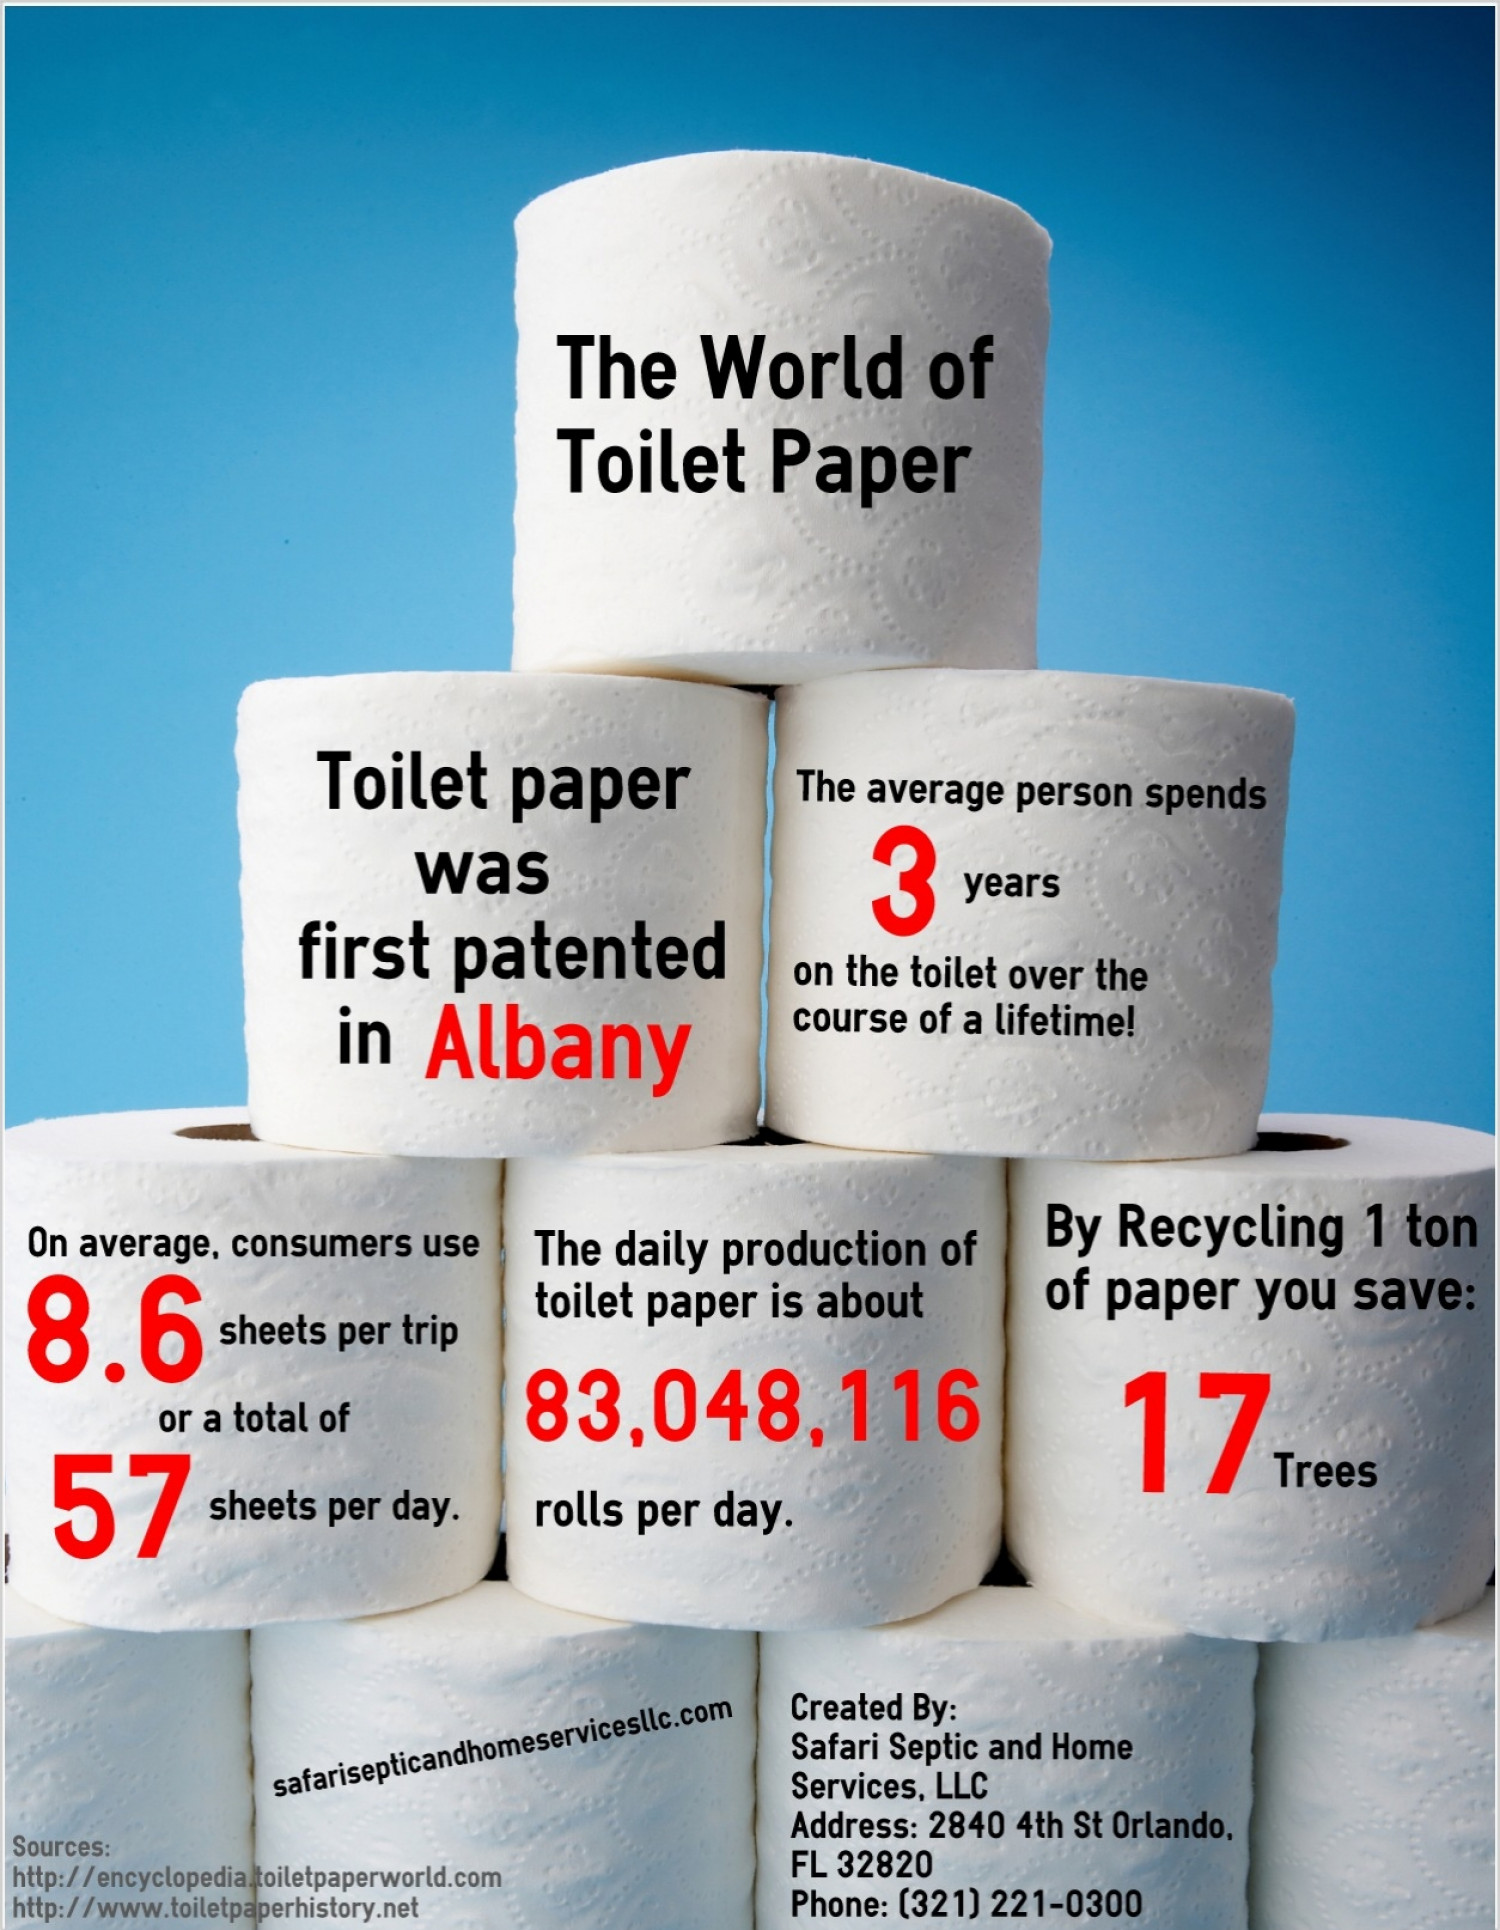 The World of Toilet Paper Infographic